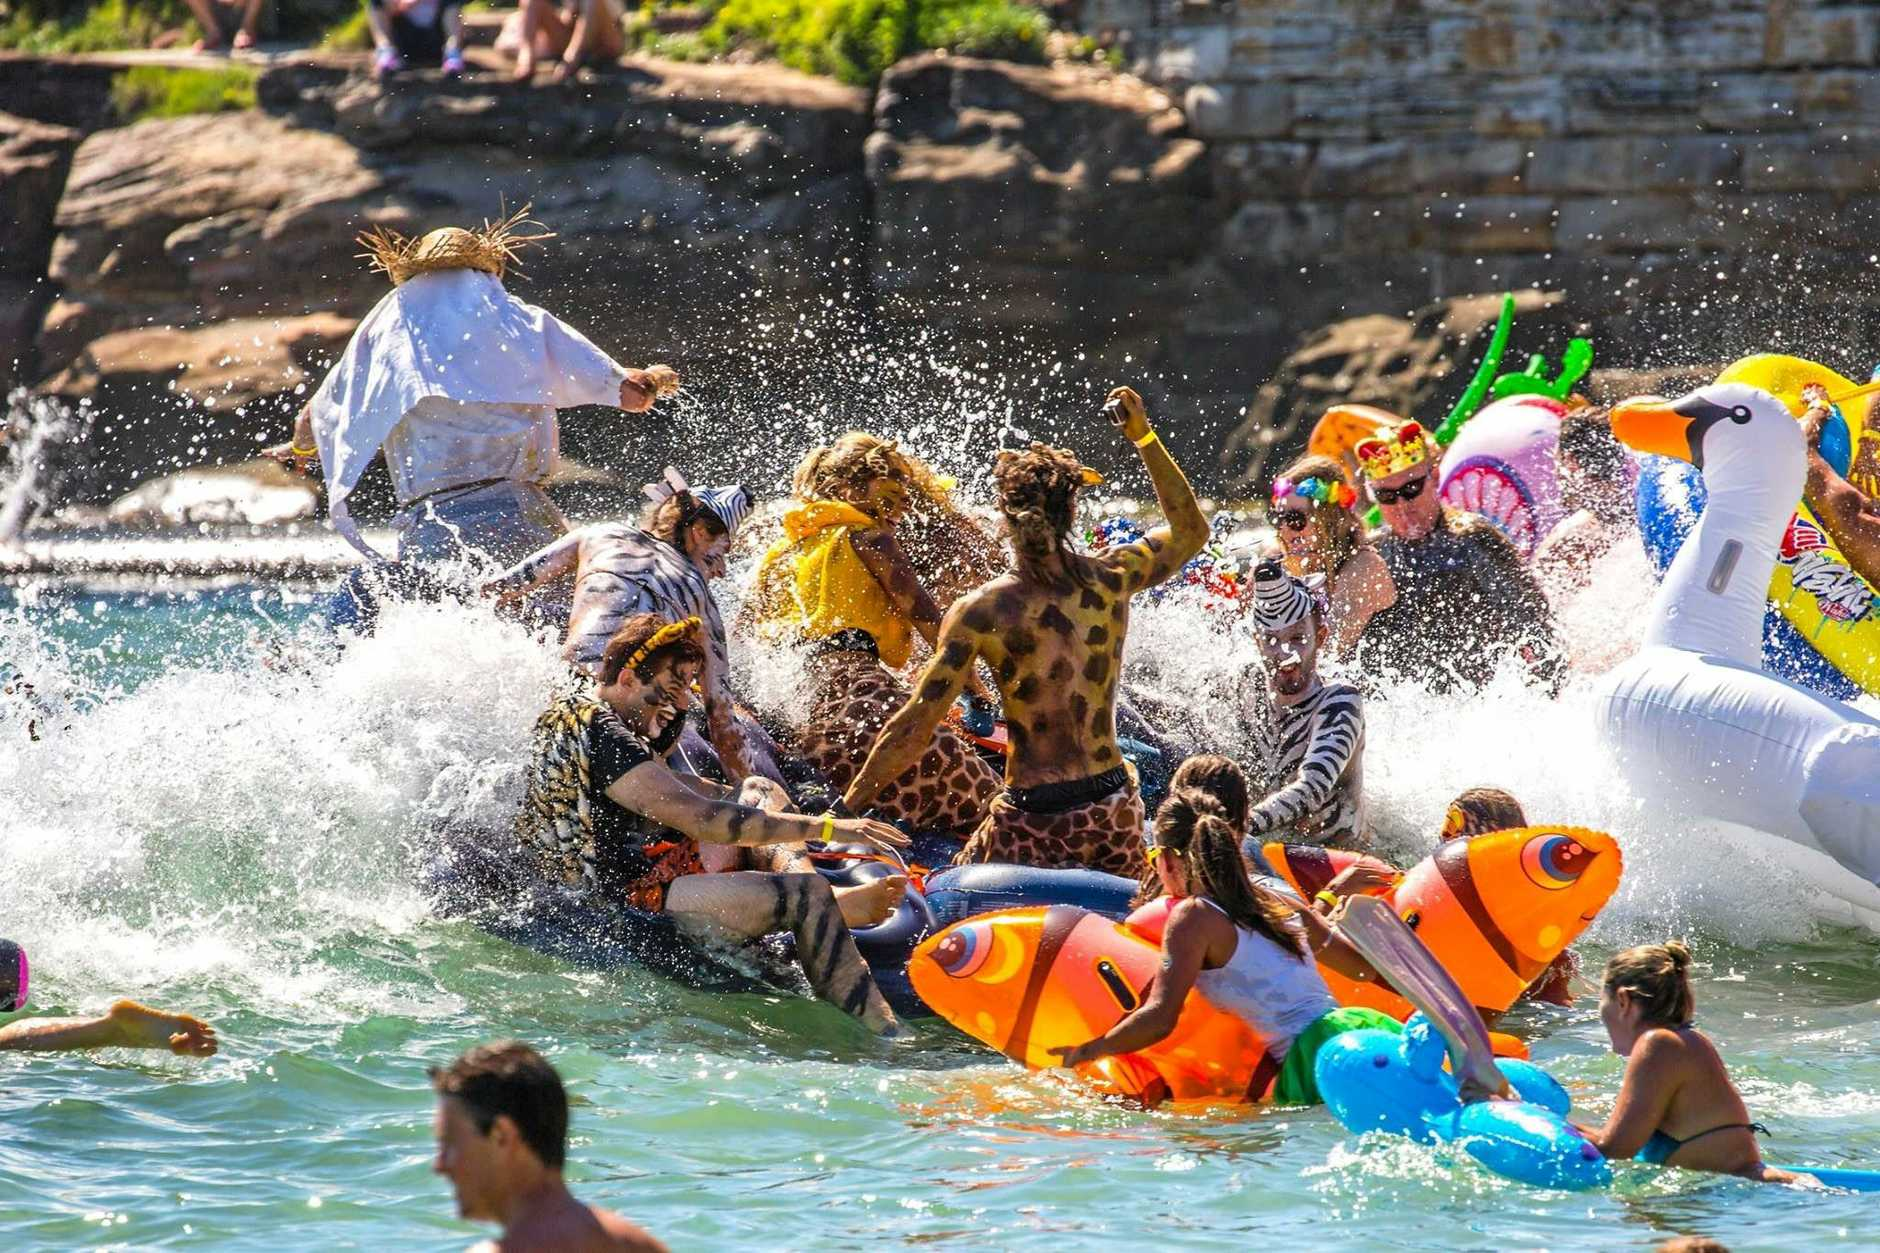 The popular Manly Inflatable Boat Race, in support of Tour de Cure, has reached its 14th year. It served as inspiration for the new Mackay Inflatable Boat Race.